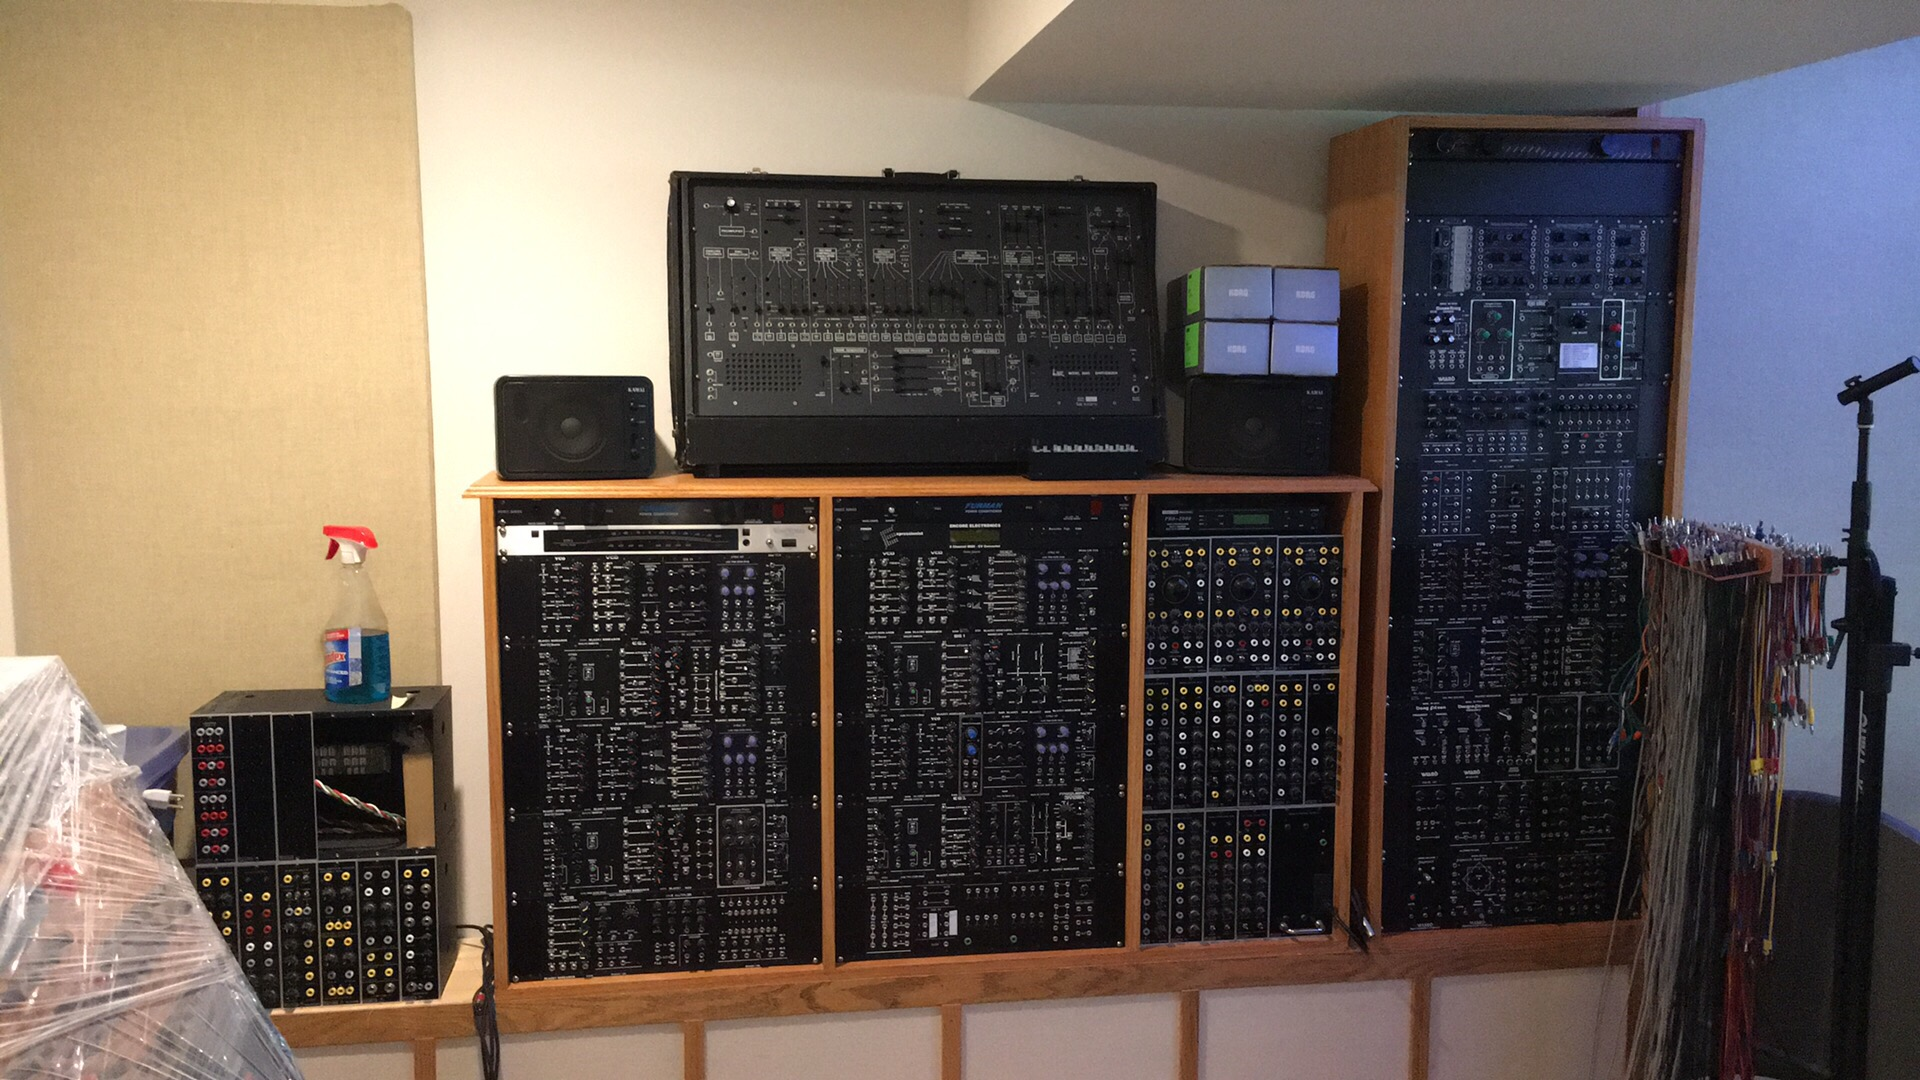 The modular synthesizer took over 14 years to assemble. It includes over 100 modules from Blacet, Modcan, Paia, Doepfer, Metalbox, and several of my own creation.